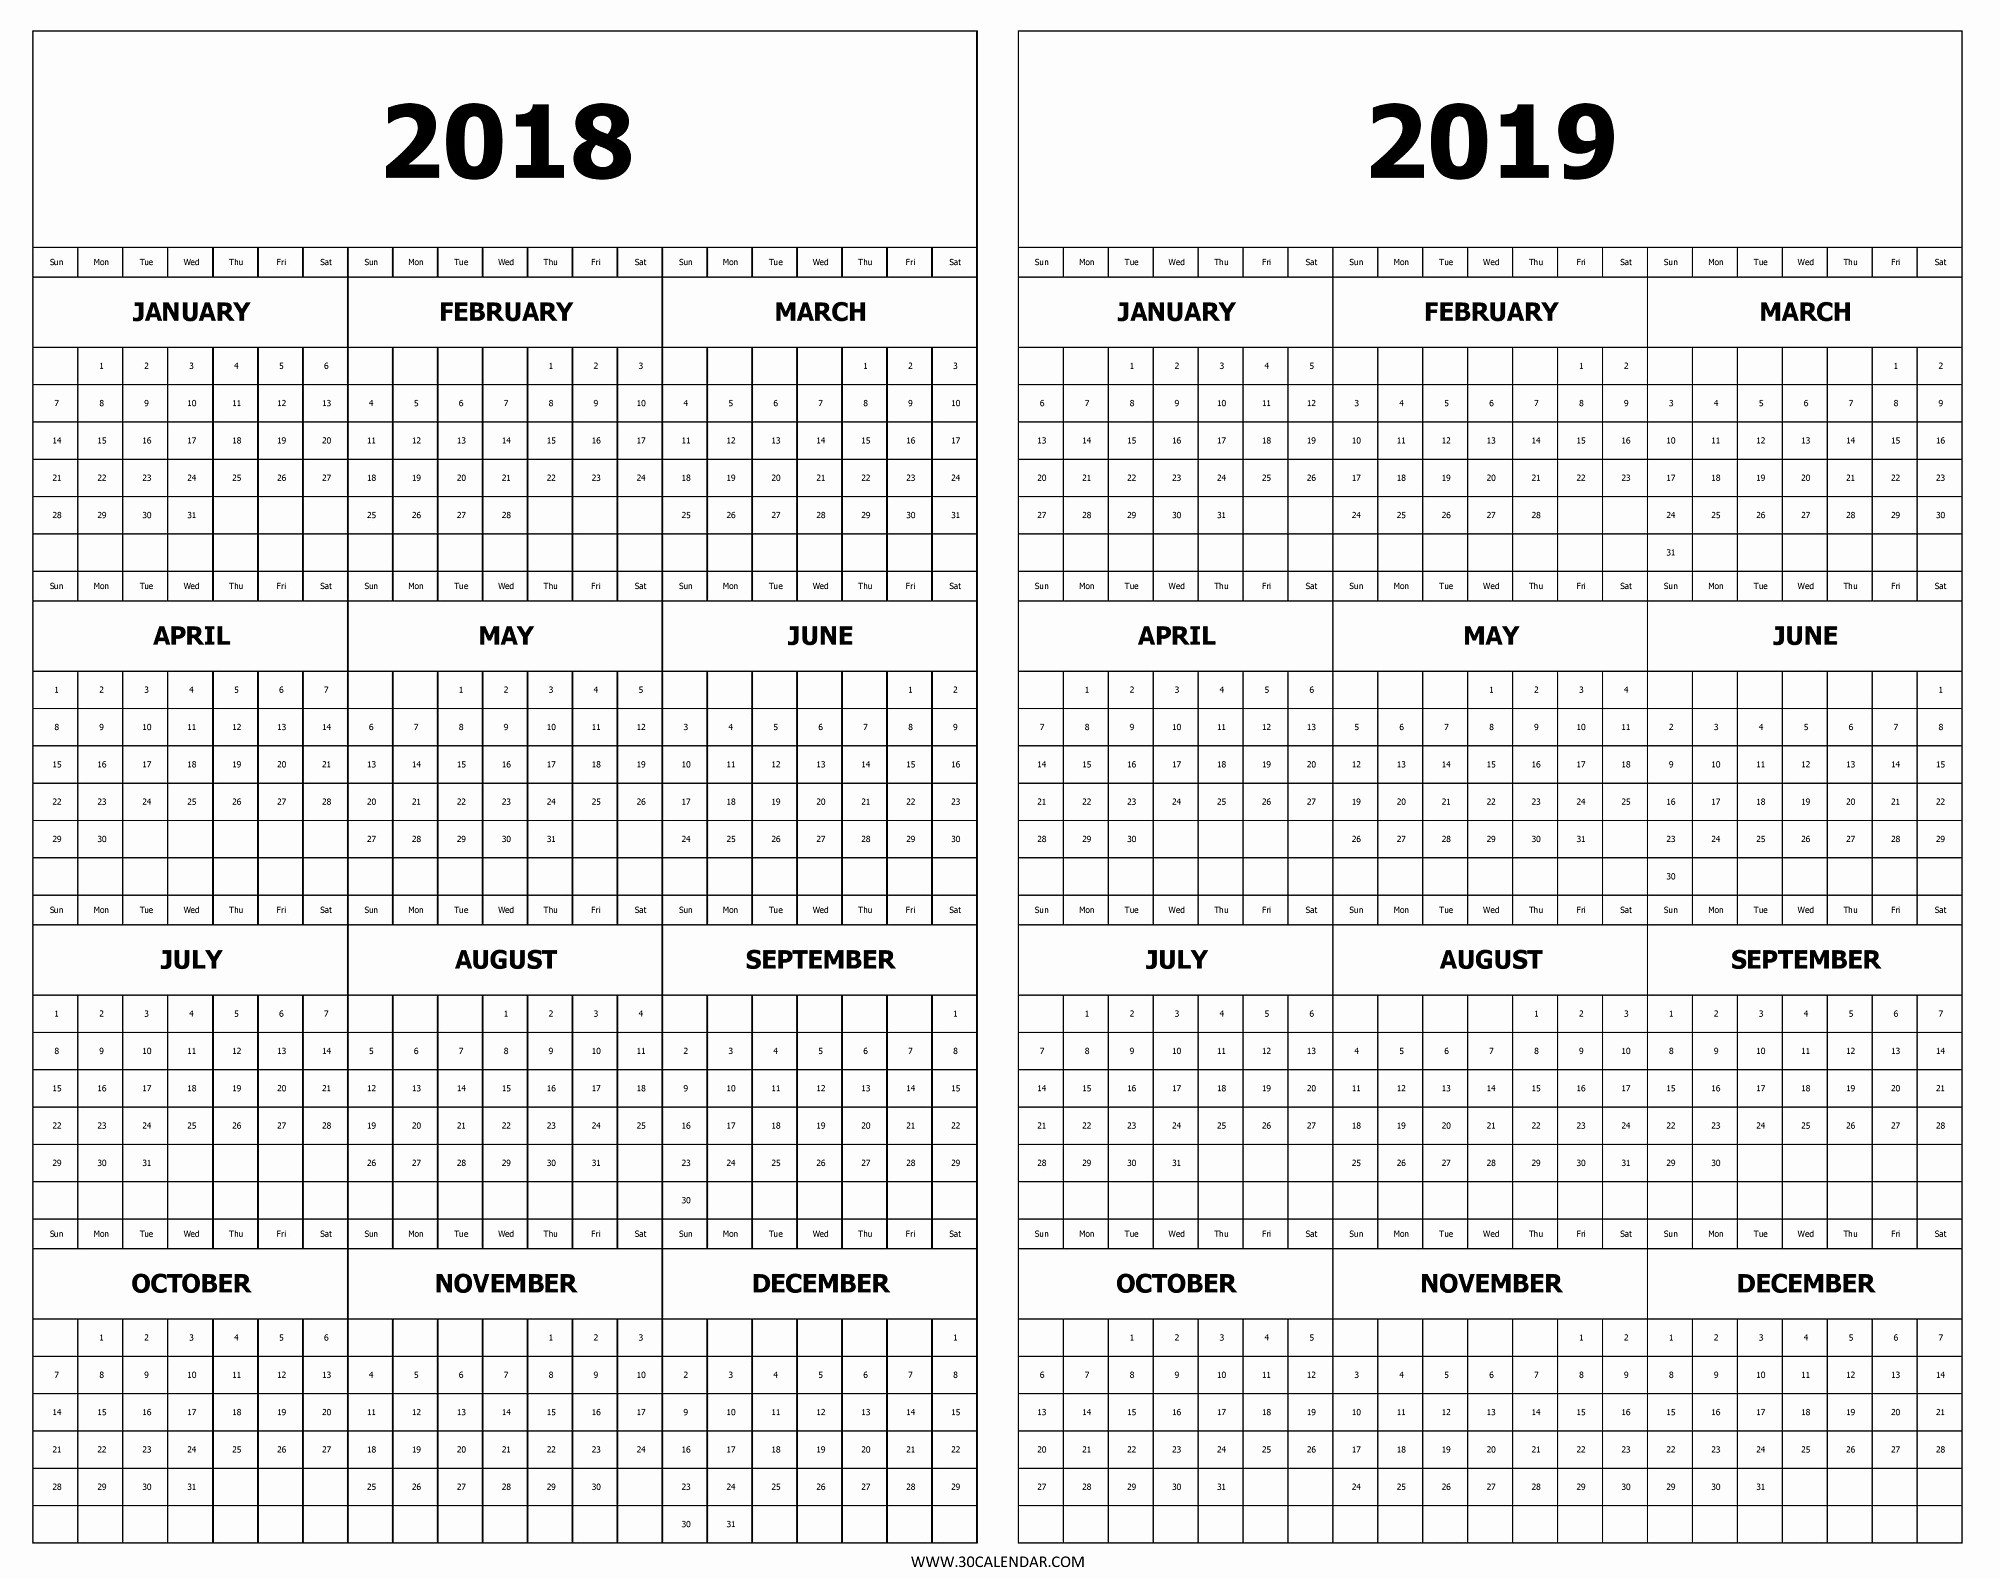 Printable Calendar 2018 and 2019 Unique Calendar 2018 and 2019 Printable Free